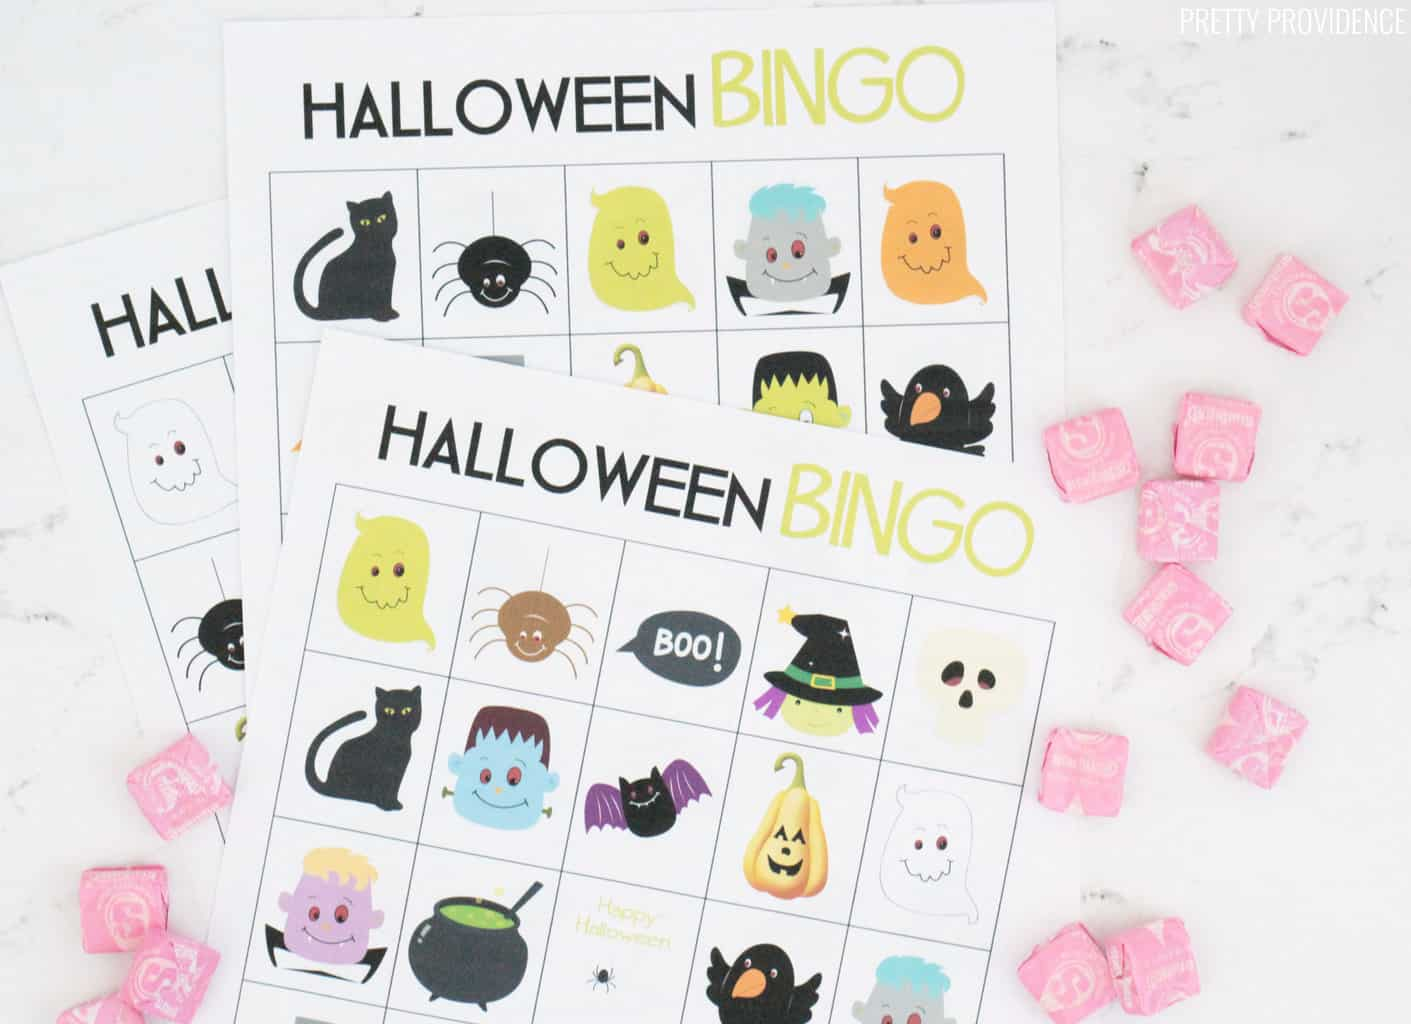 Halloween Bingo Free Printable Cards with pink starburts